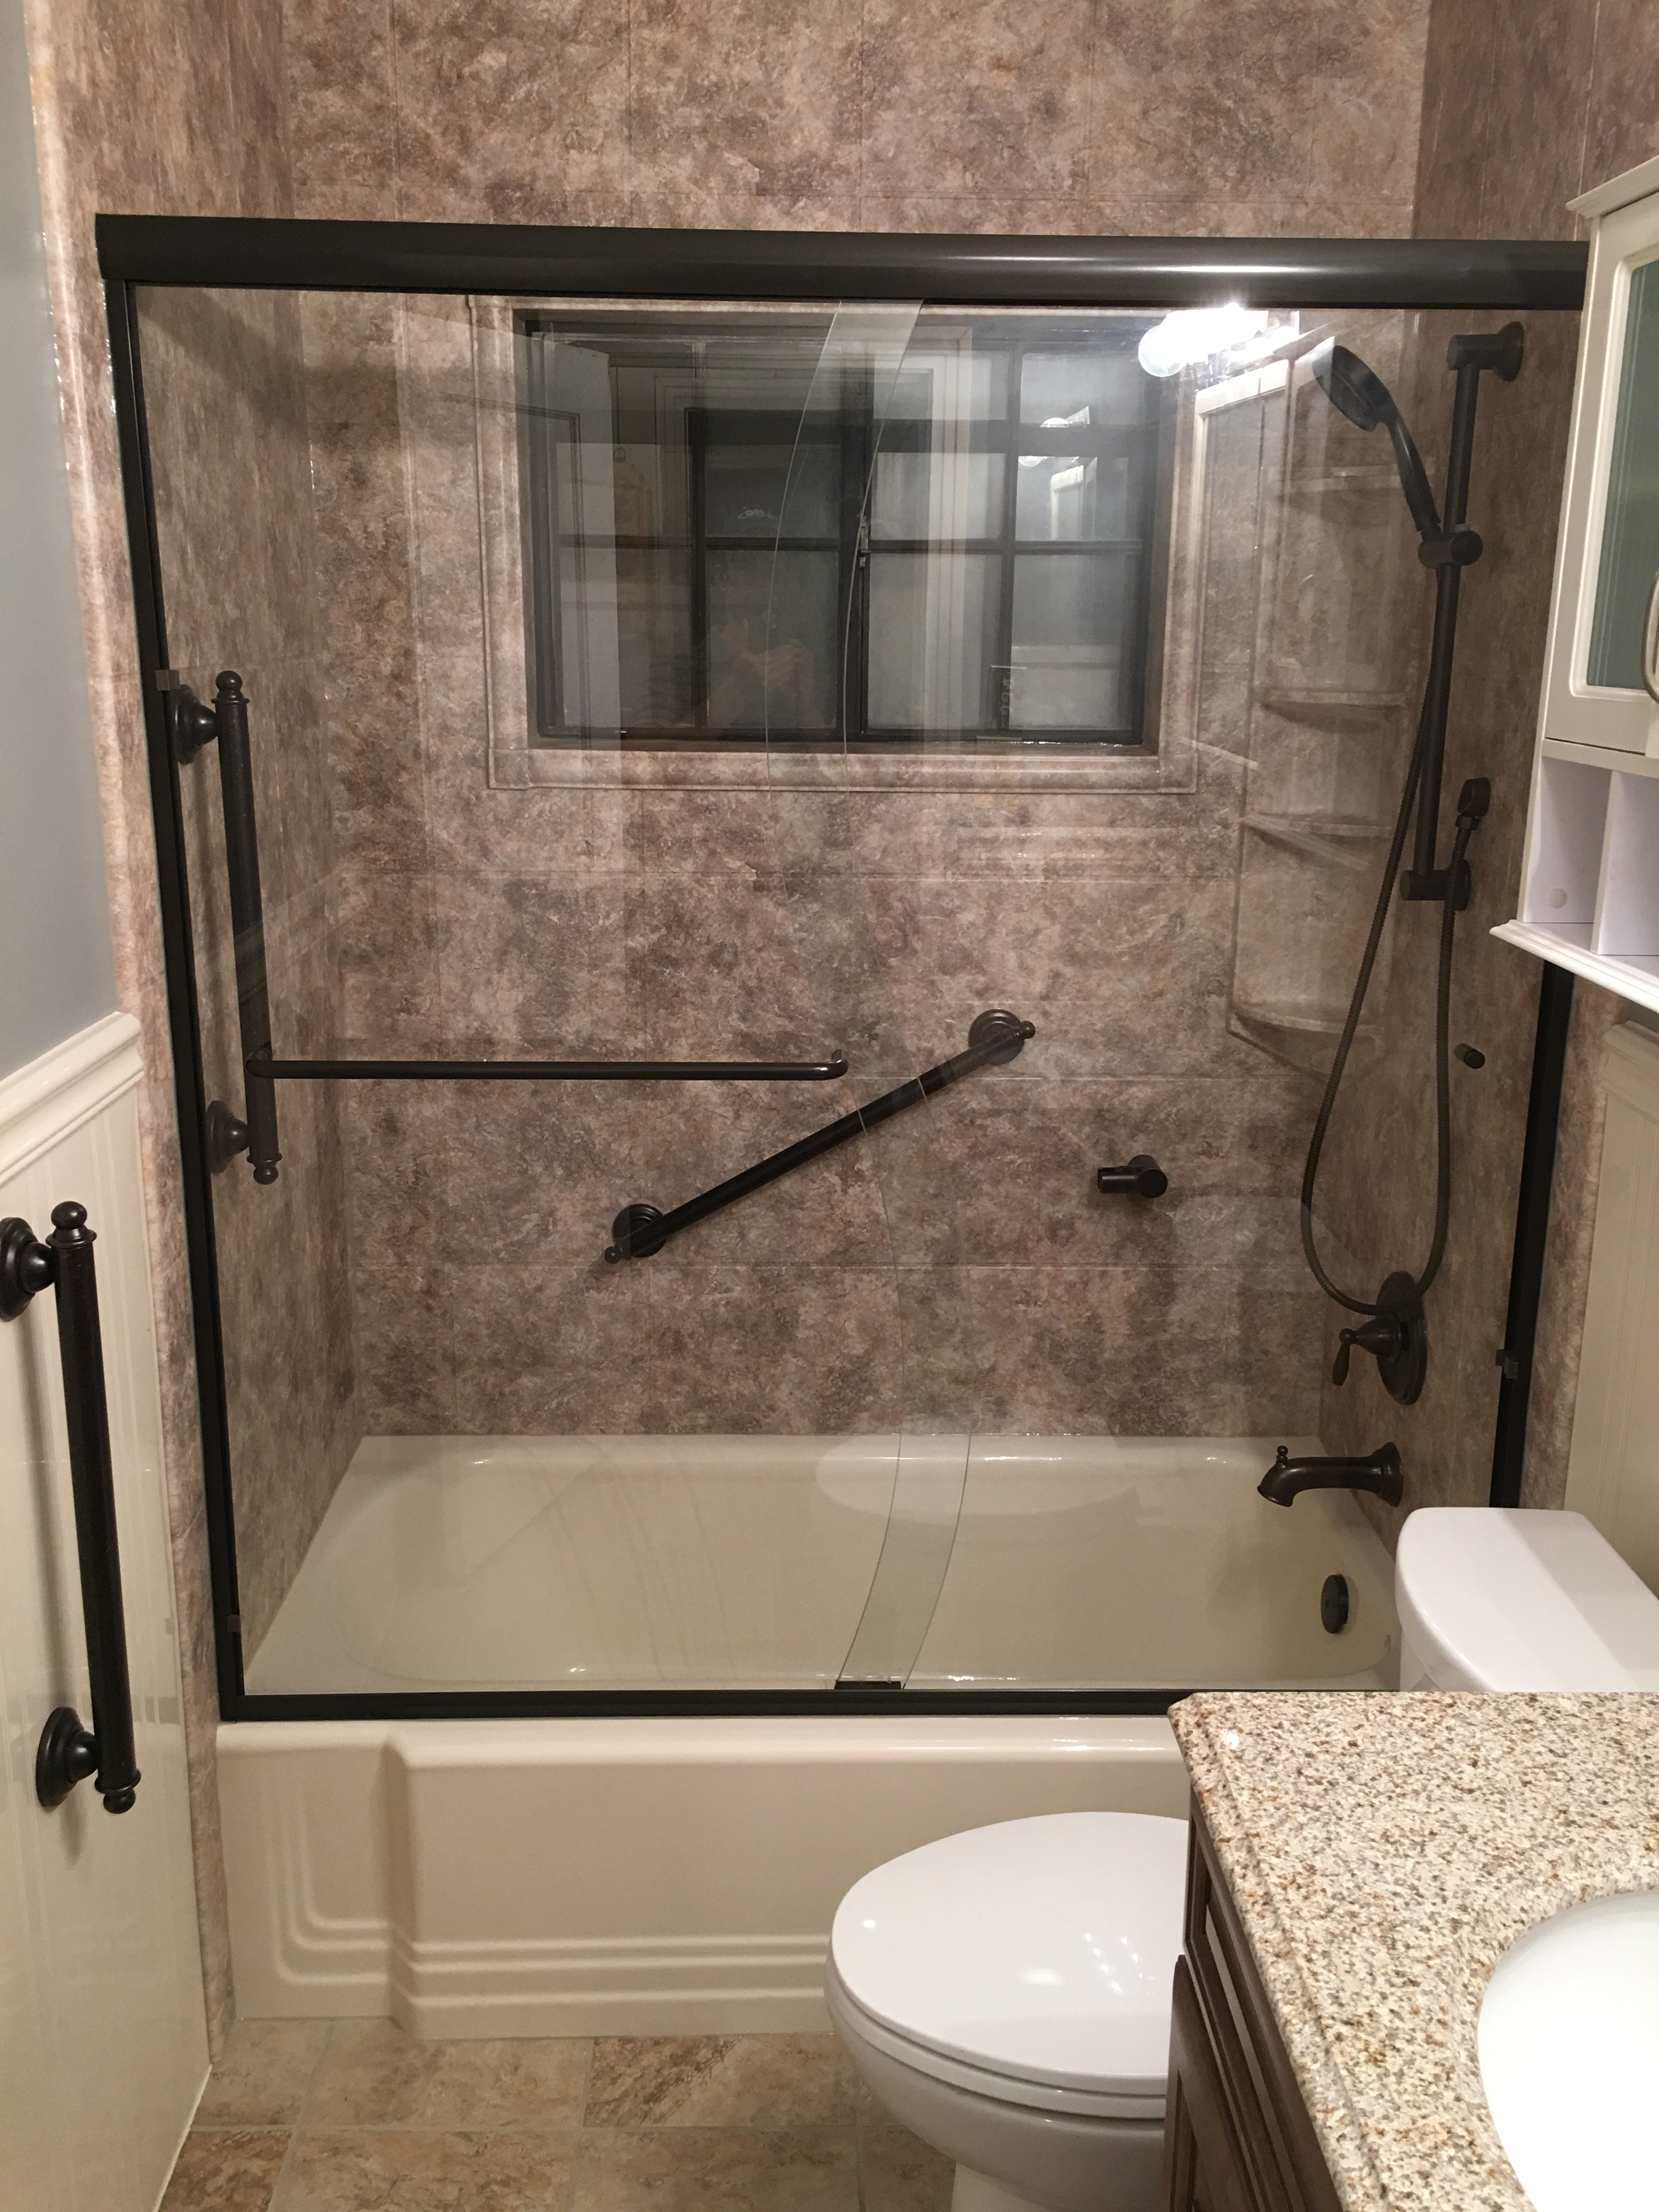 Bathroom Remodel Cost By Bath Innovations In Lubbock TX - Bathroom remodel lubbock